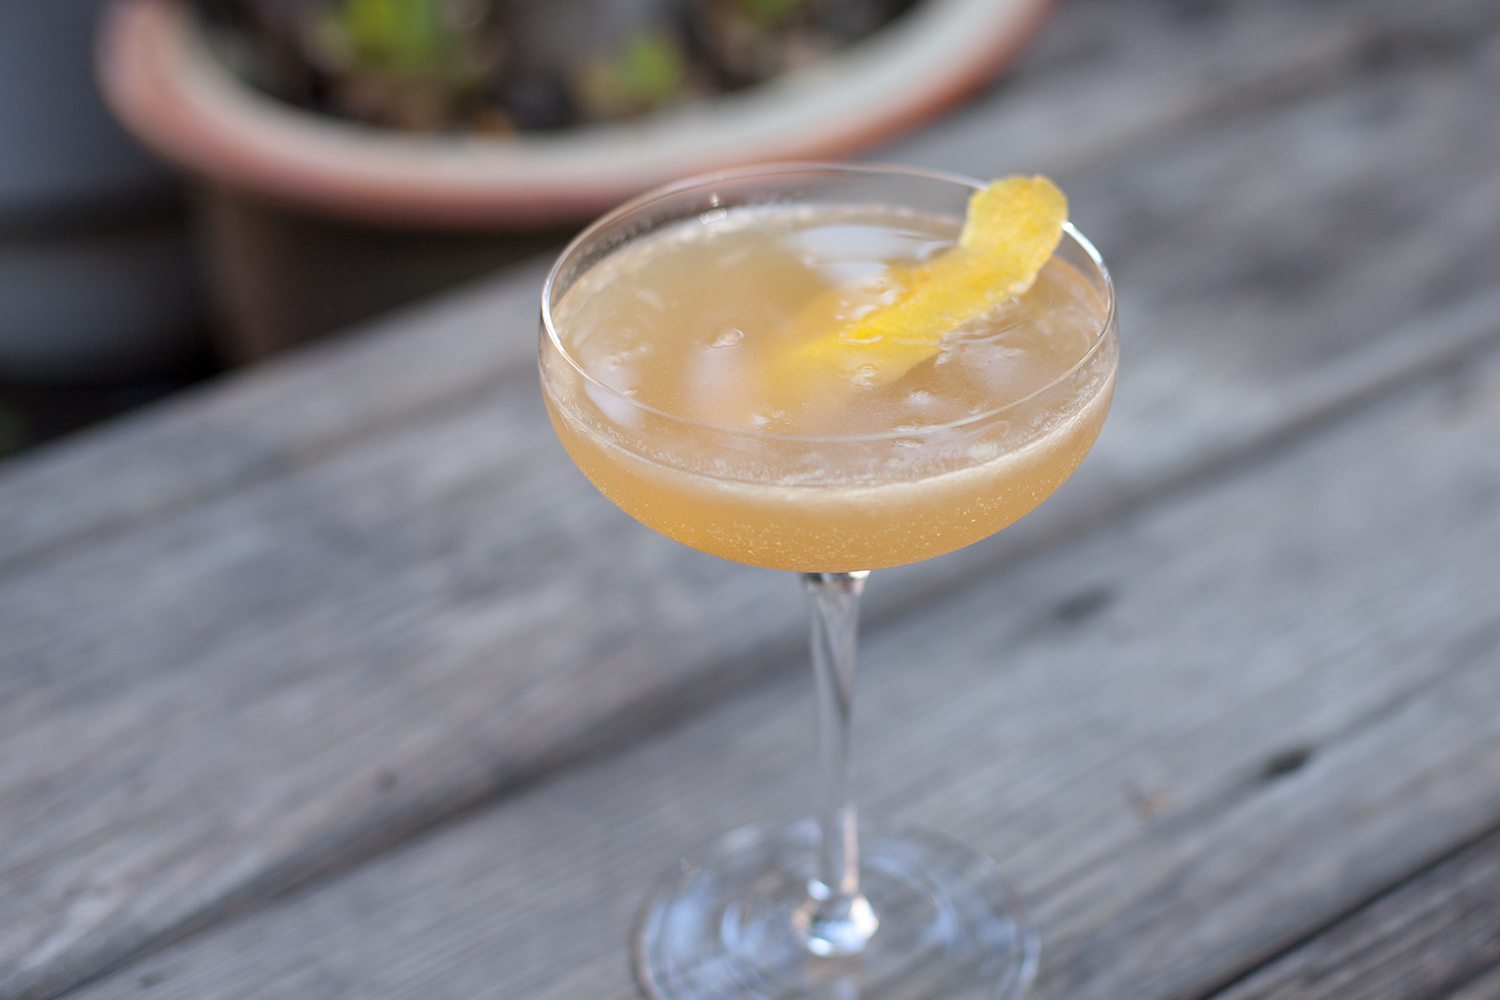 ... Derby: A Classic Cocktail for Hollywood and The Oscars | The Drink